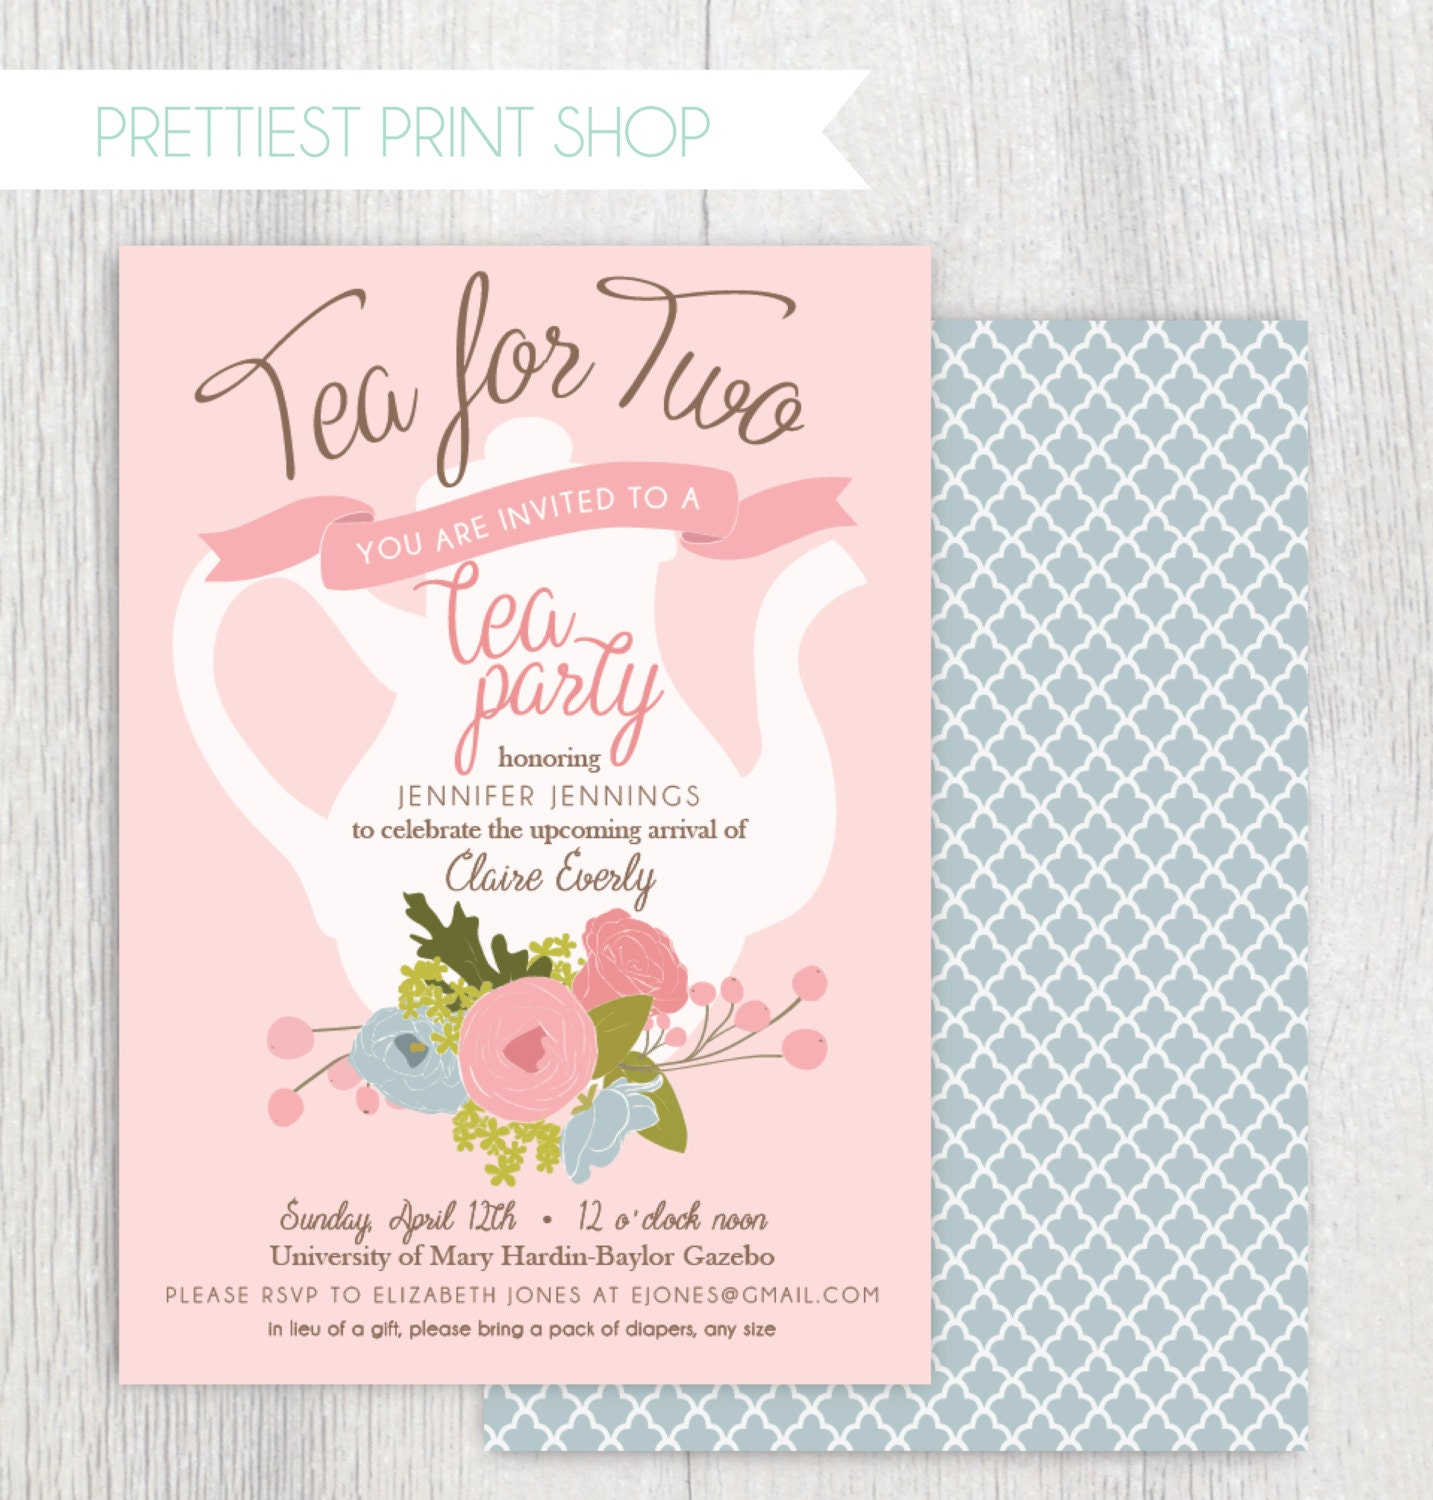 Baby shower tea party invitations idealstalist baby shower tea party invitations filmwisefo